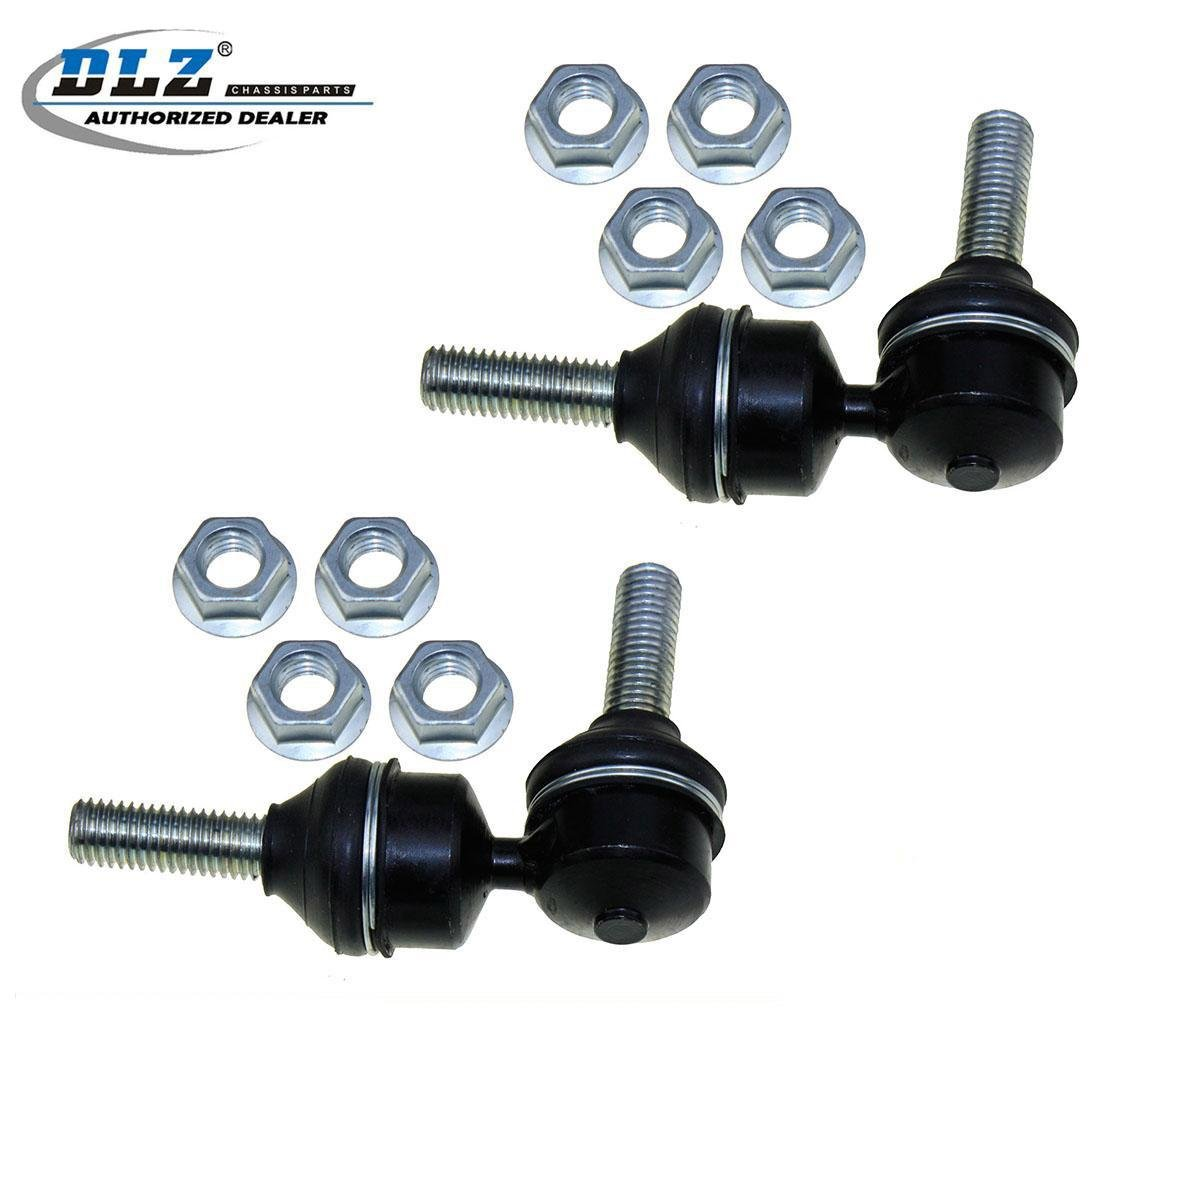 DLZ 2 Pcs Front Suspension Kit-2 Sway Stabilizer Bar Link Compatible with 1995-2000 Chrysler Cirrus 1996-2006 Chrysler Sebring 1995-2006 Dodge Stratus 1996-2000 Plymouth Breeze K7306 Partsgoing